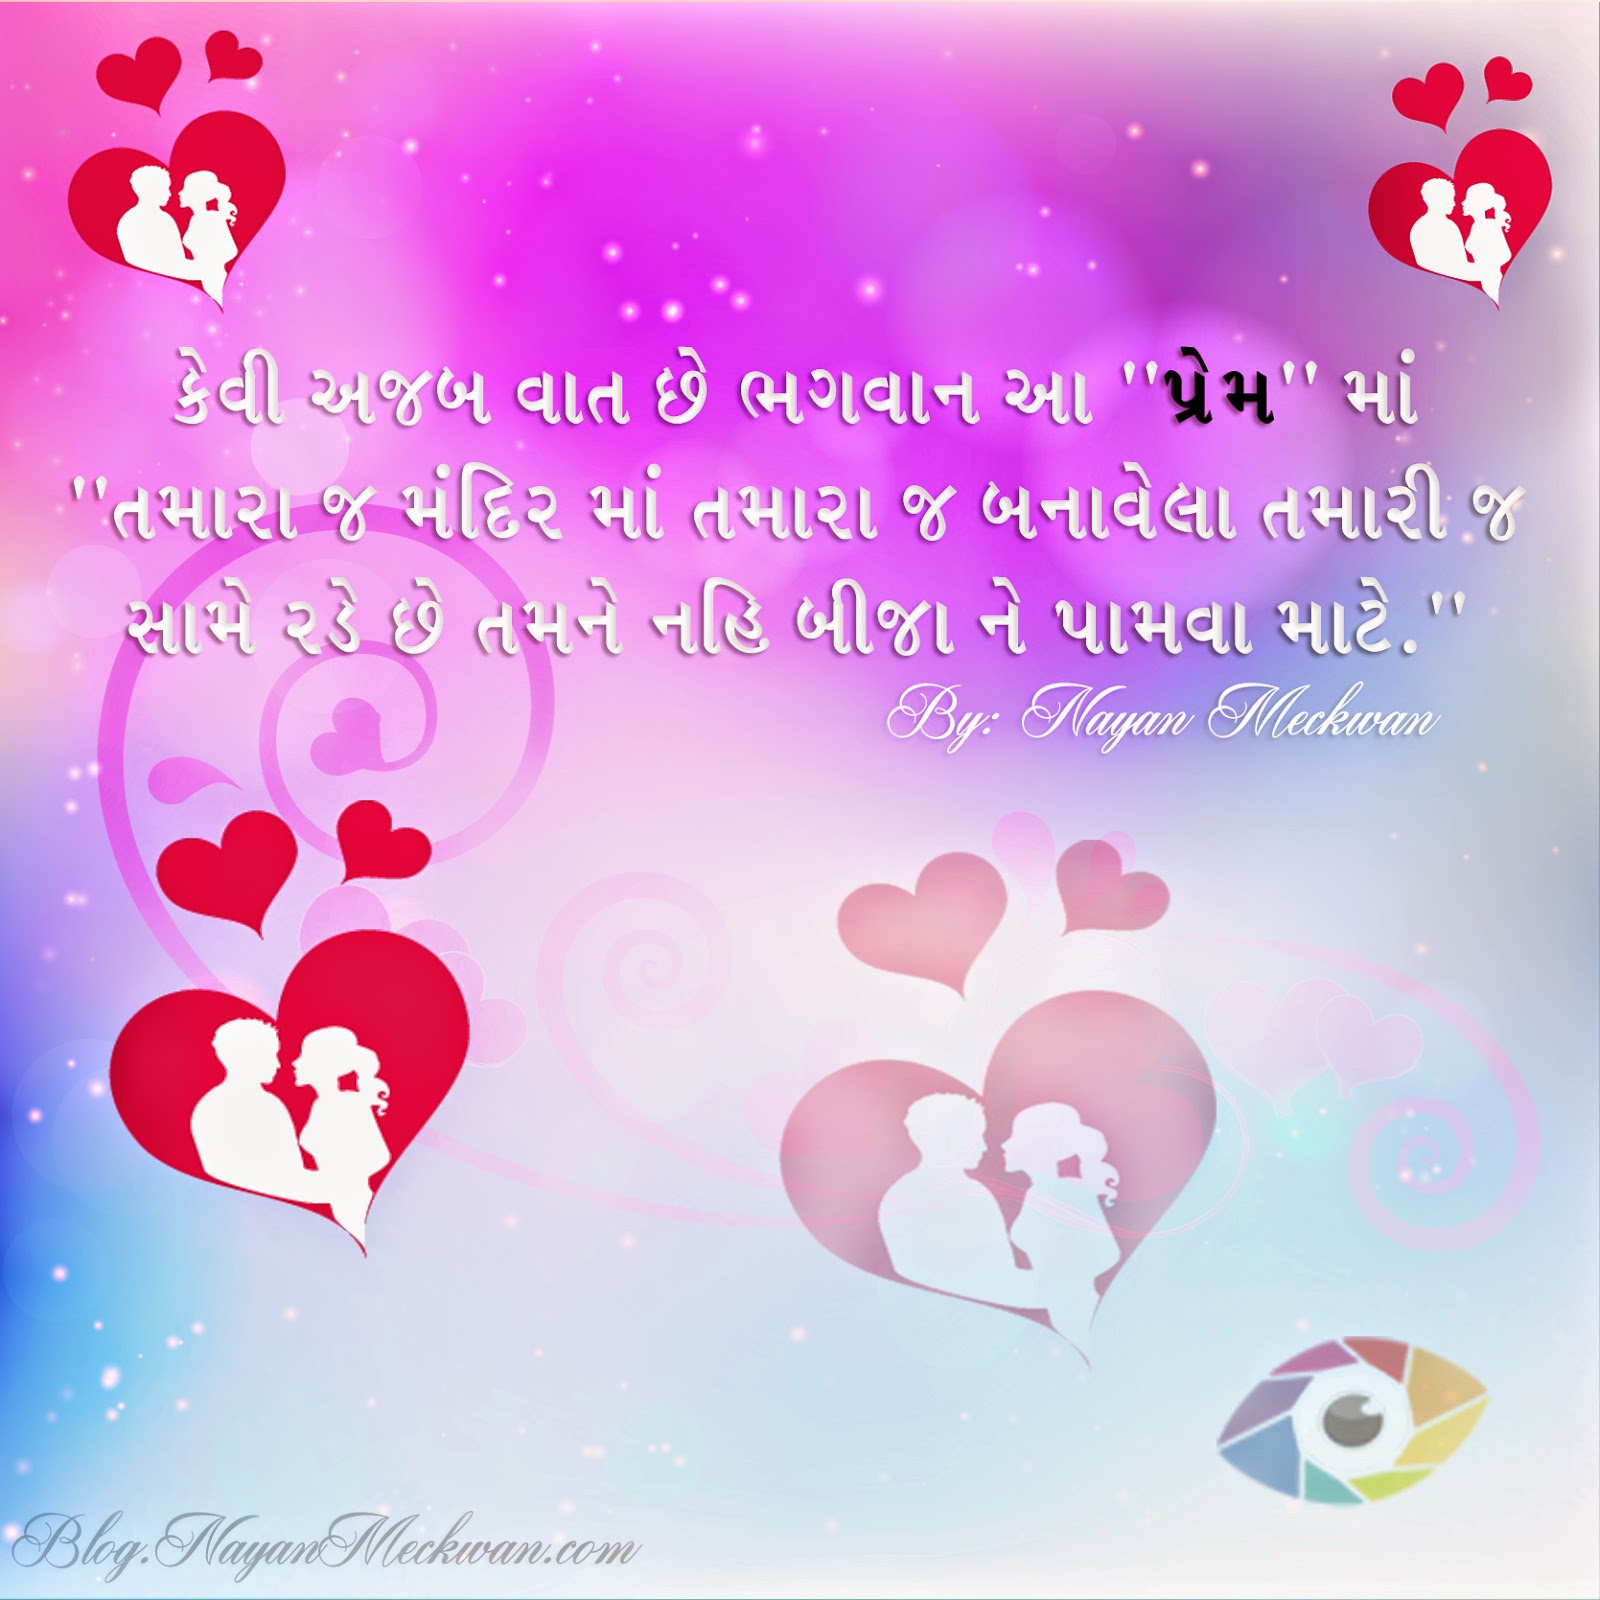 કેવી અજબ વાત છે. | Kevi Ajab Vat Chhe. Gujarati Quote By: Nayan Meckwan